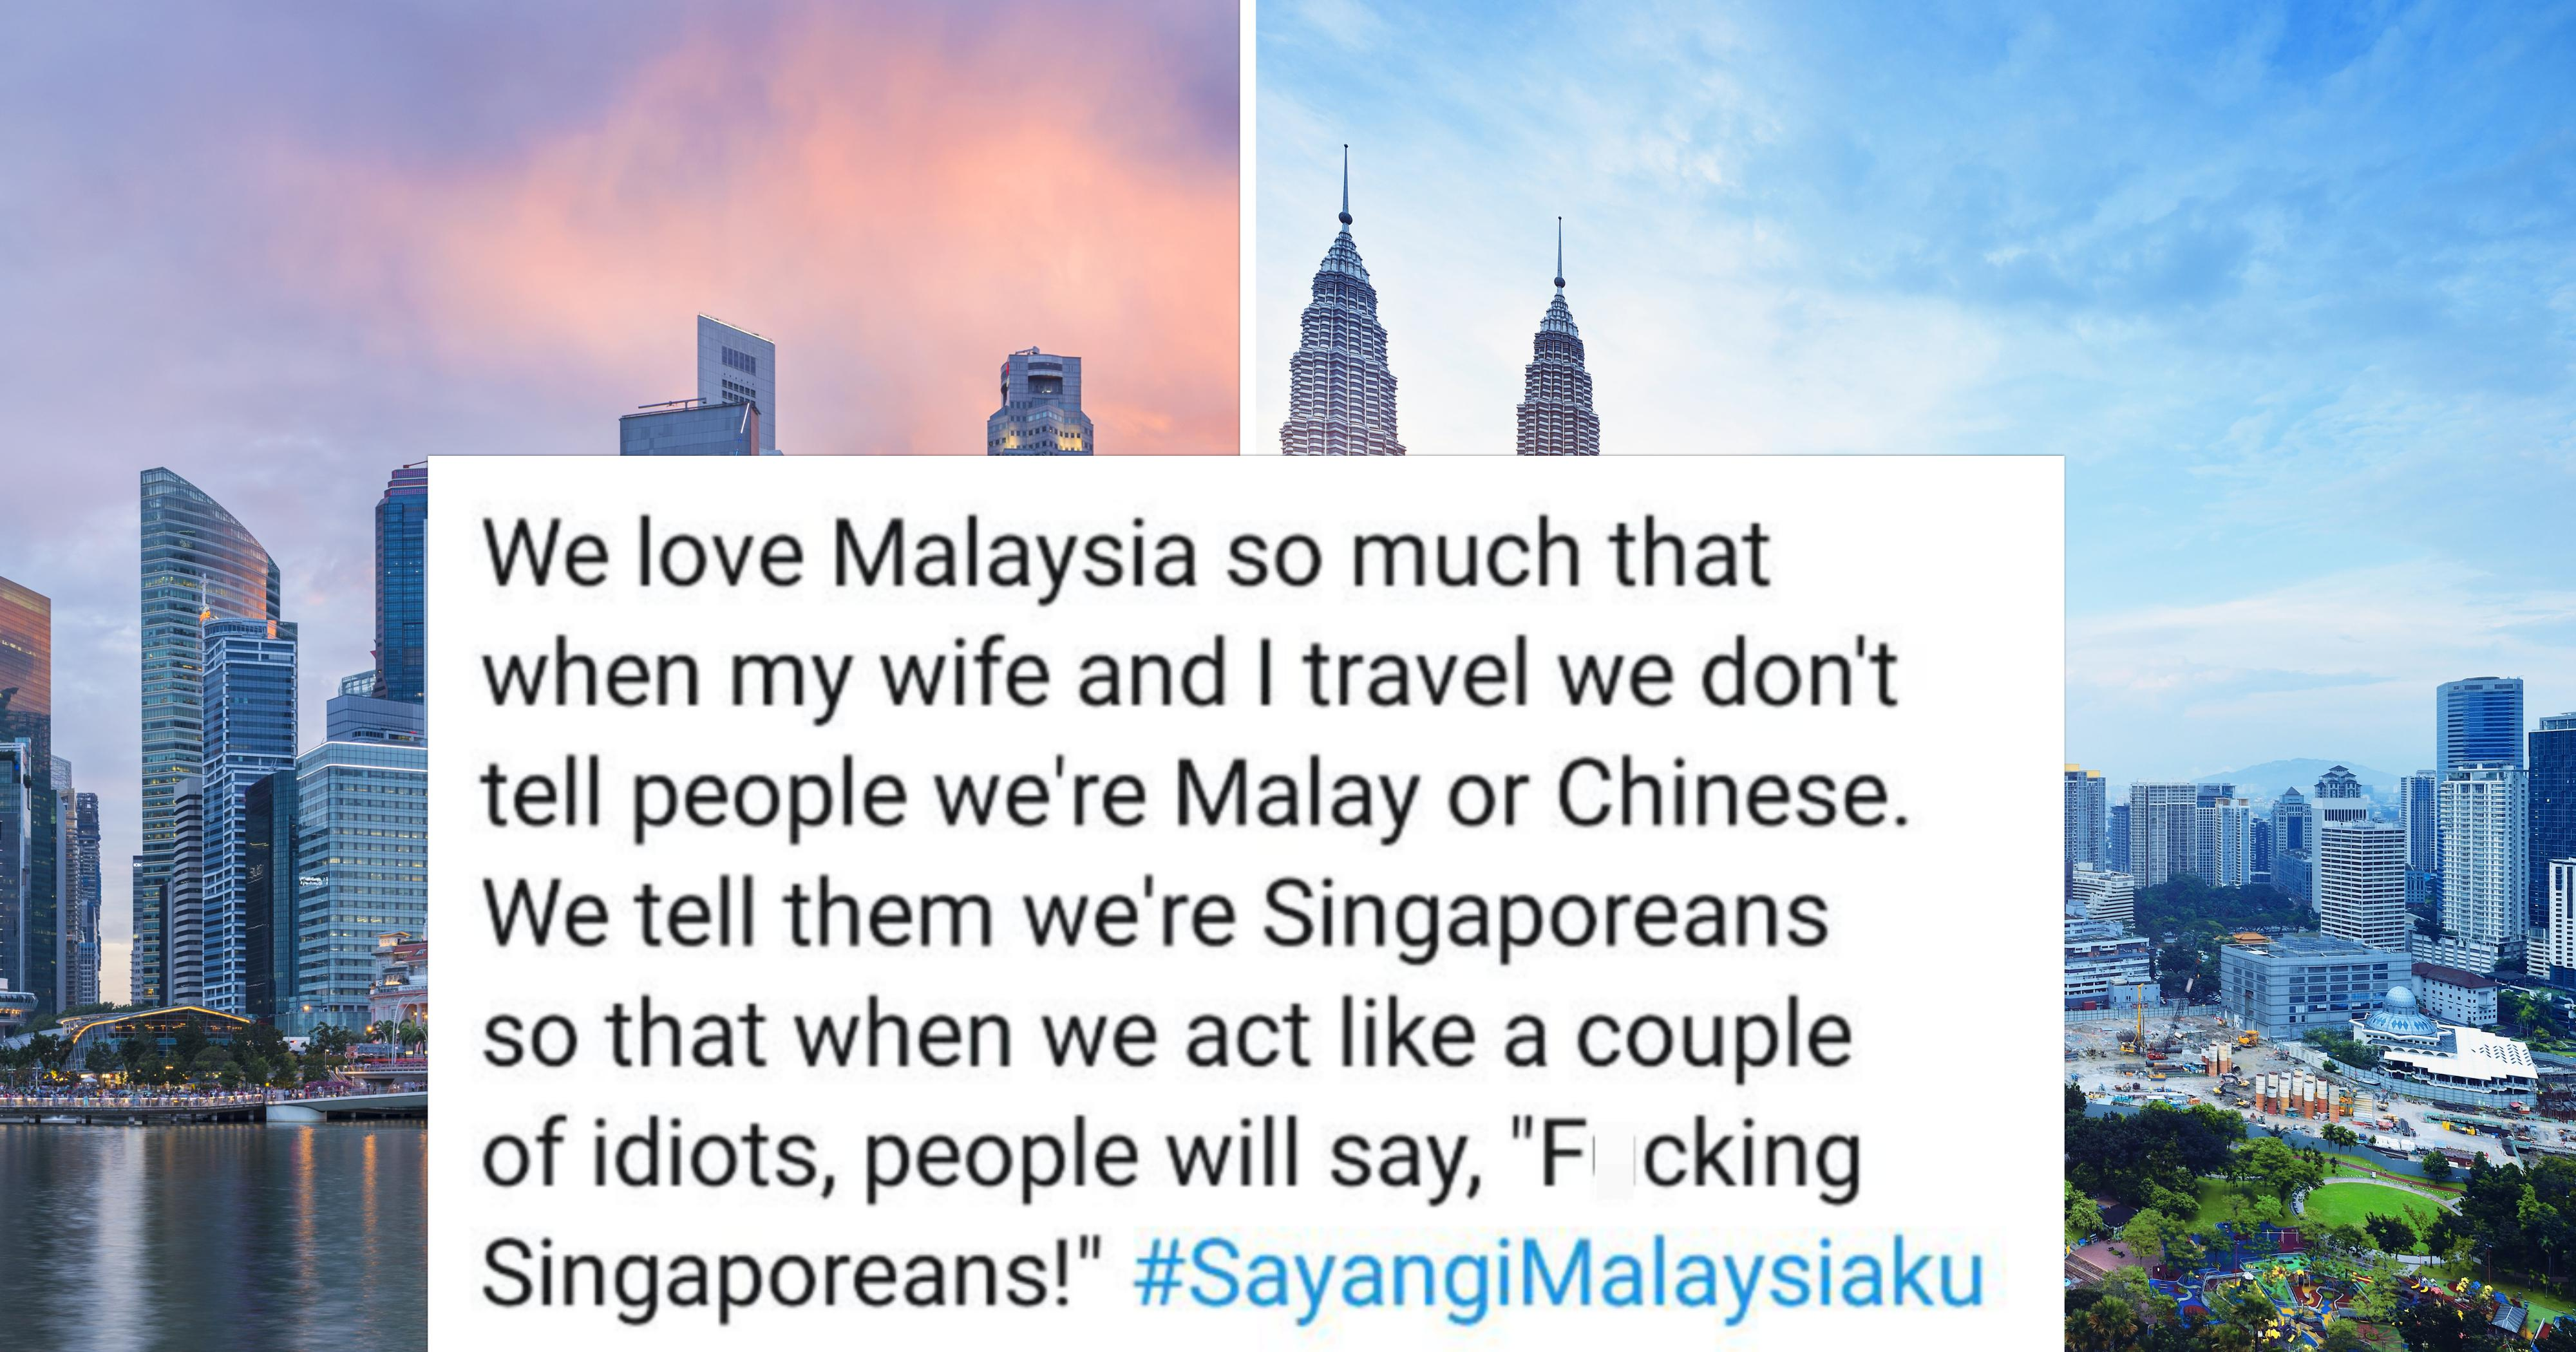 M'sian claims to 'pretend' to be S'porean when overseas to freely act like idiots, real S'poreans respond